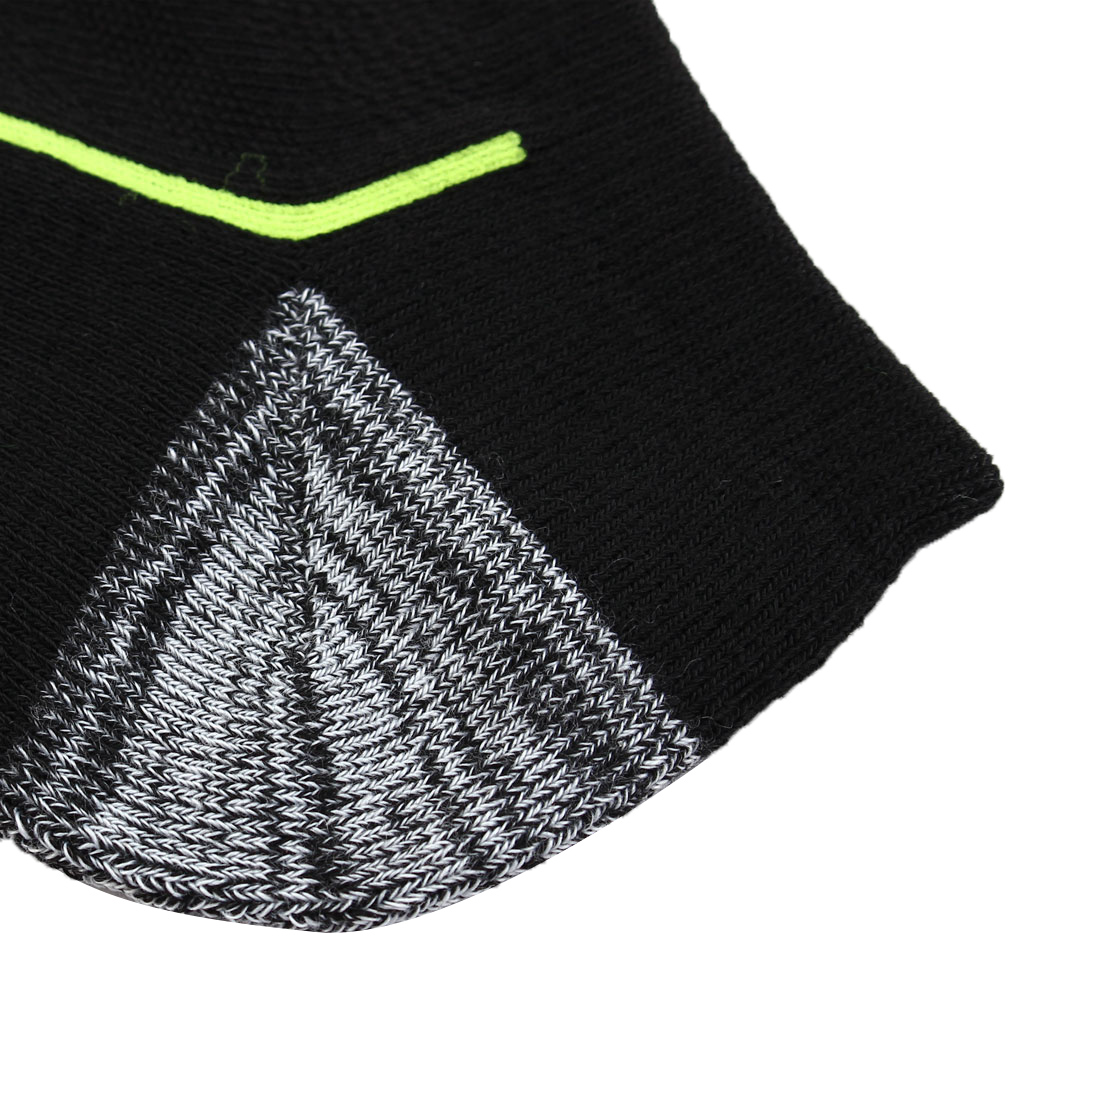 Men Jogging Running Low Cut Athletic Sports Casual Ankle Socks Black Yellow Pair - image 2 de 5